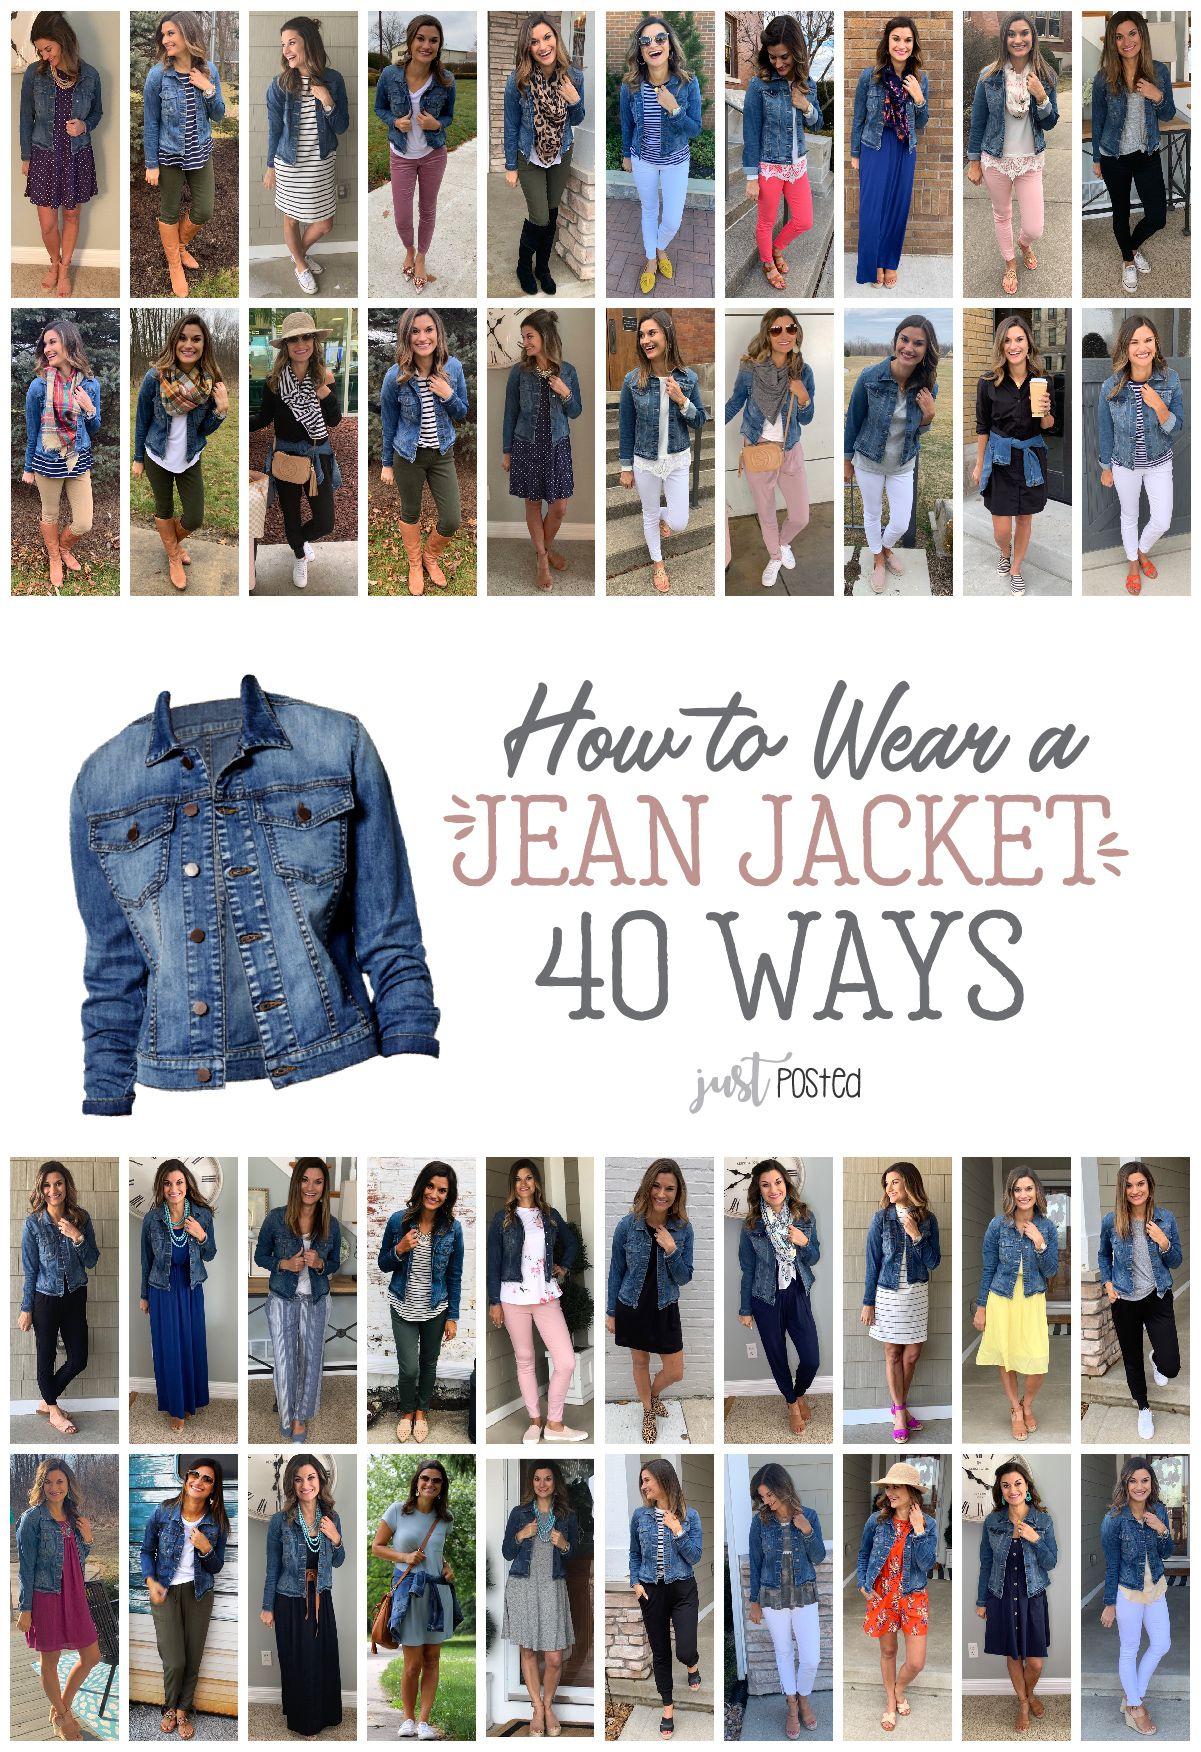 How to Wear a Jean Jacket 40 Ways! #howtowear